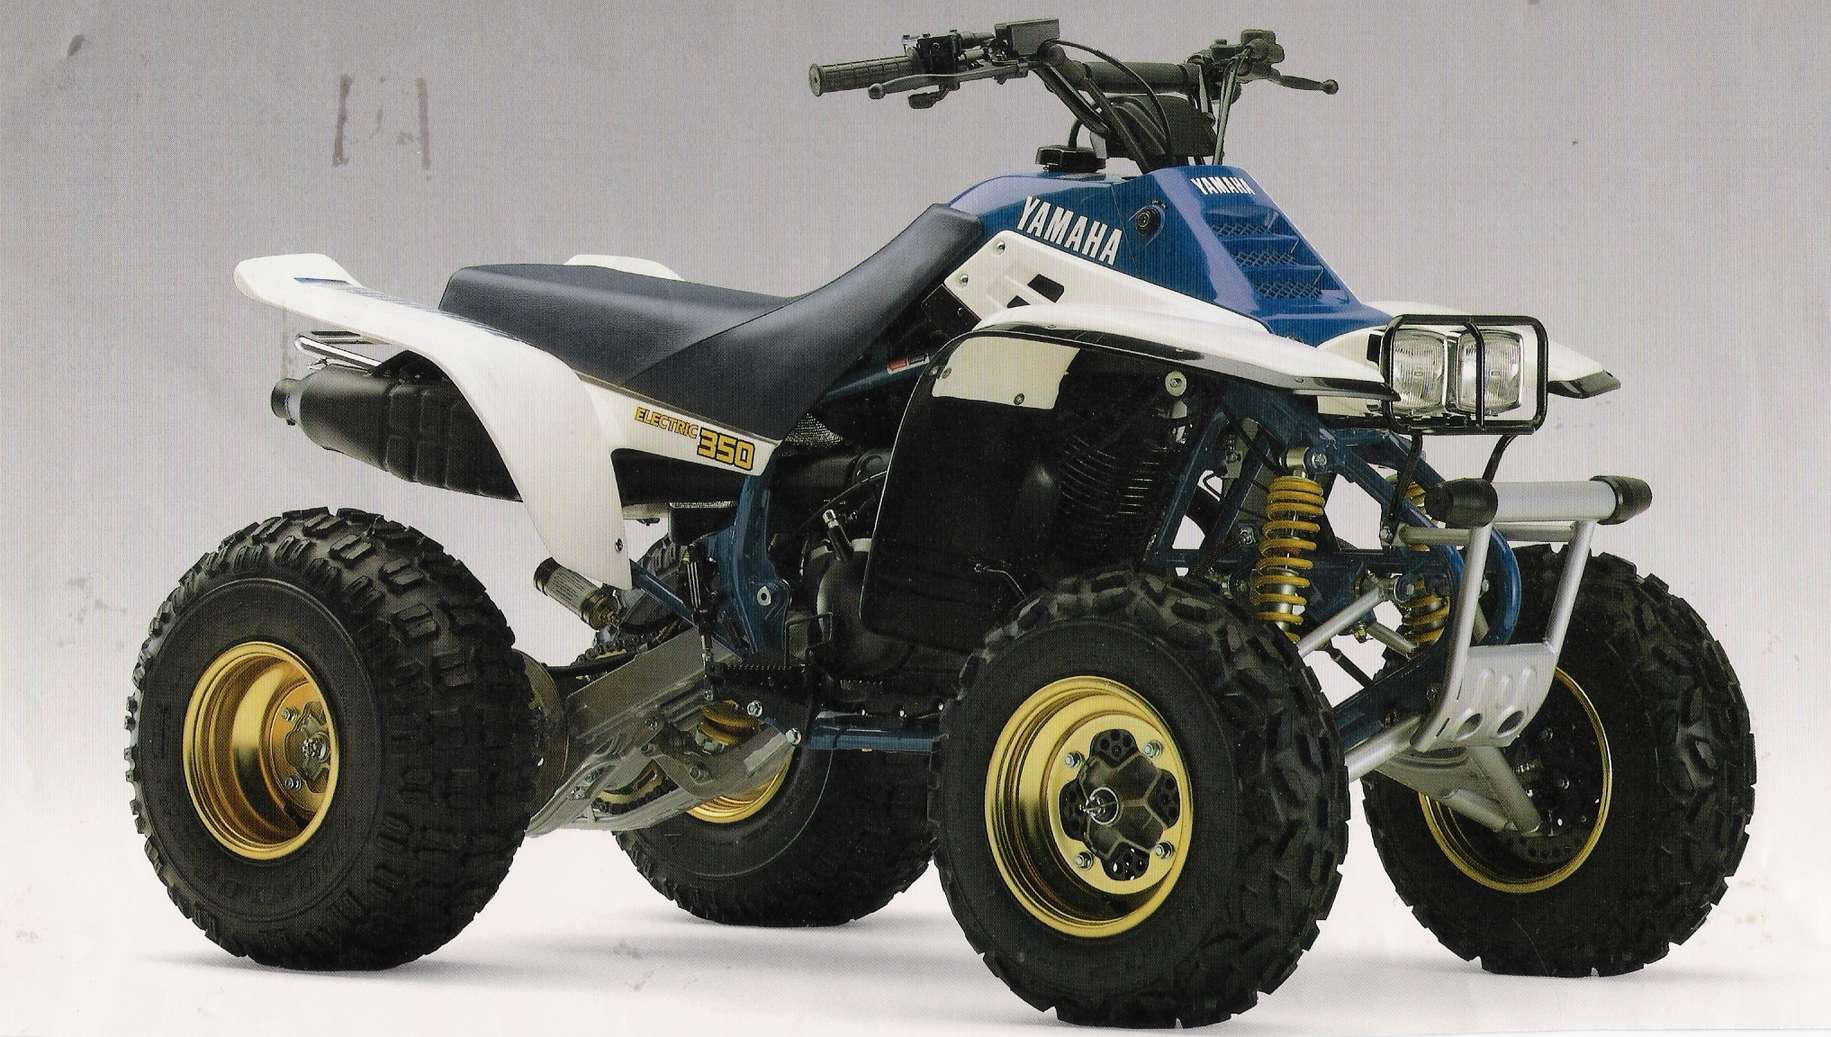 Yamaha Warrior 350 #9851158